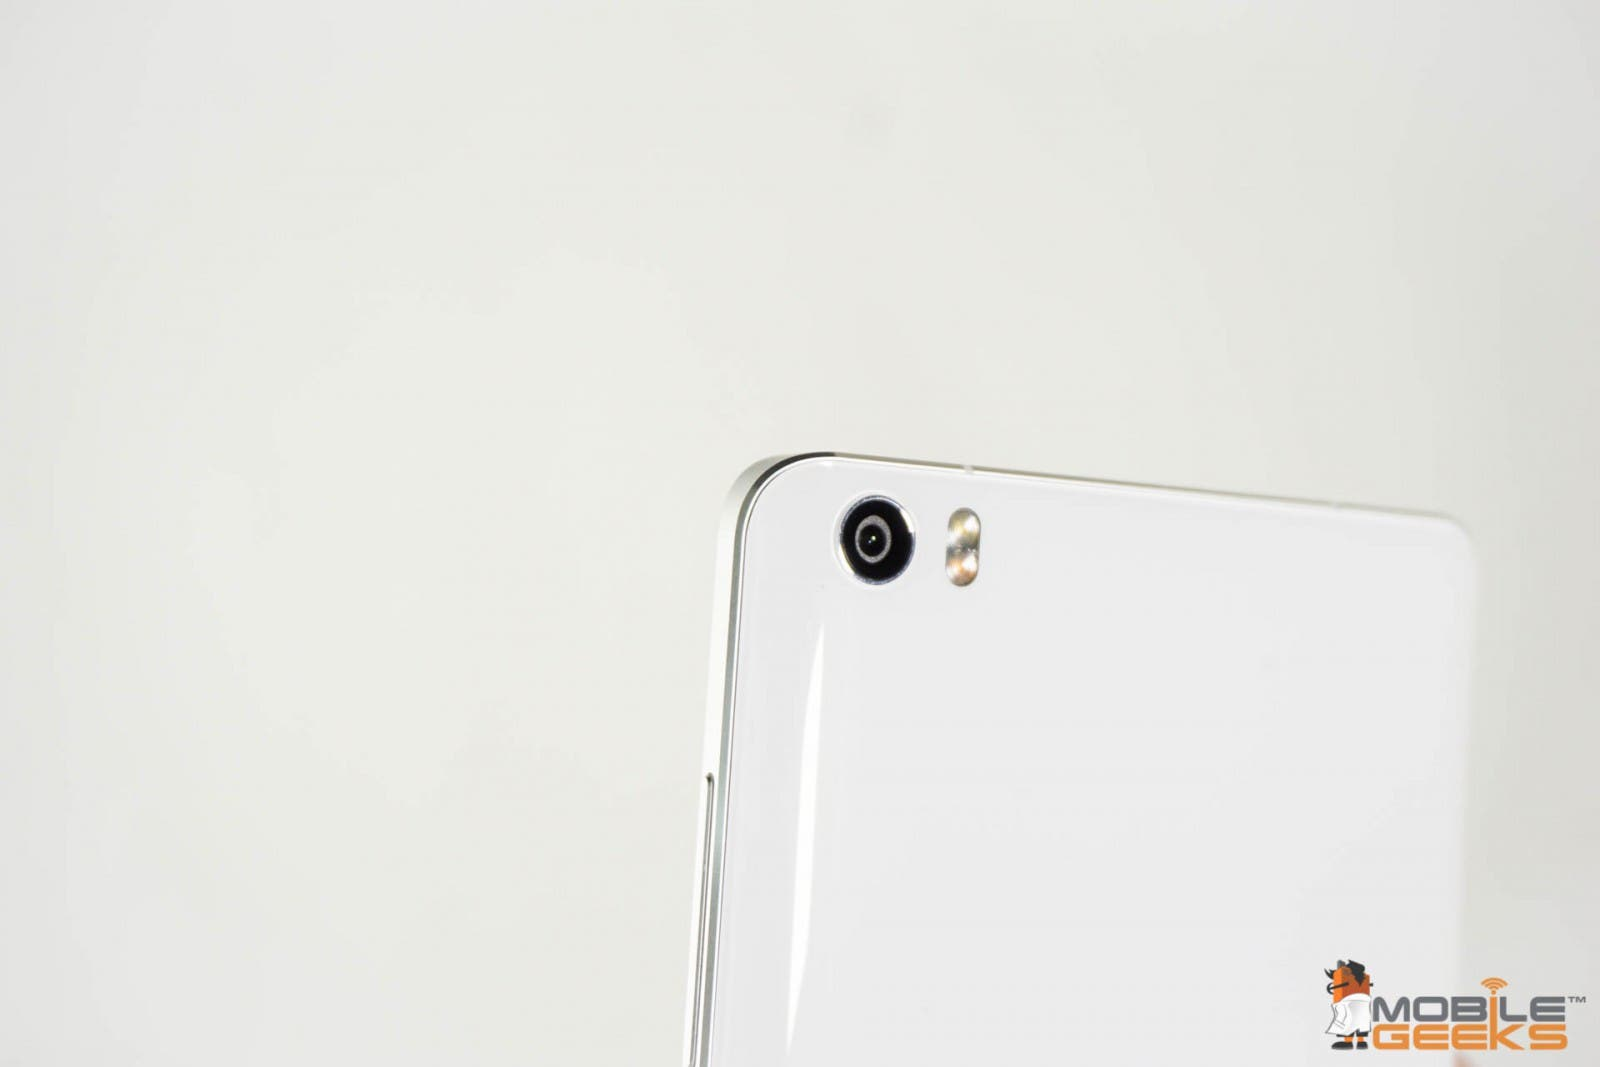 xiaomi-mi-note-samsung-galaxy-note-4-1